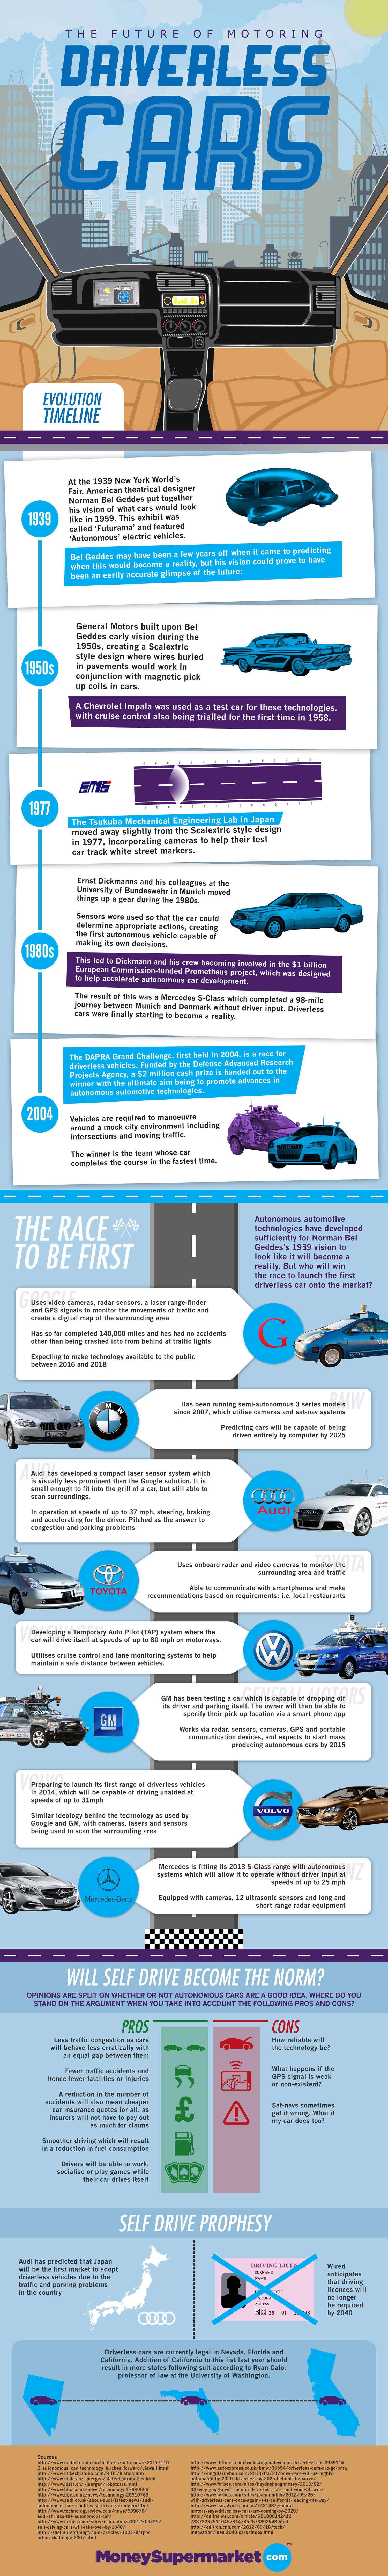 Driverless Cars Infographic